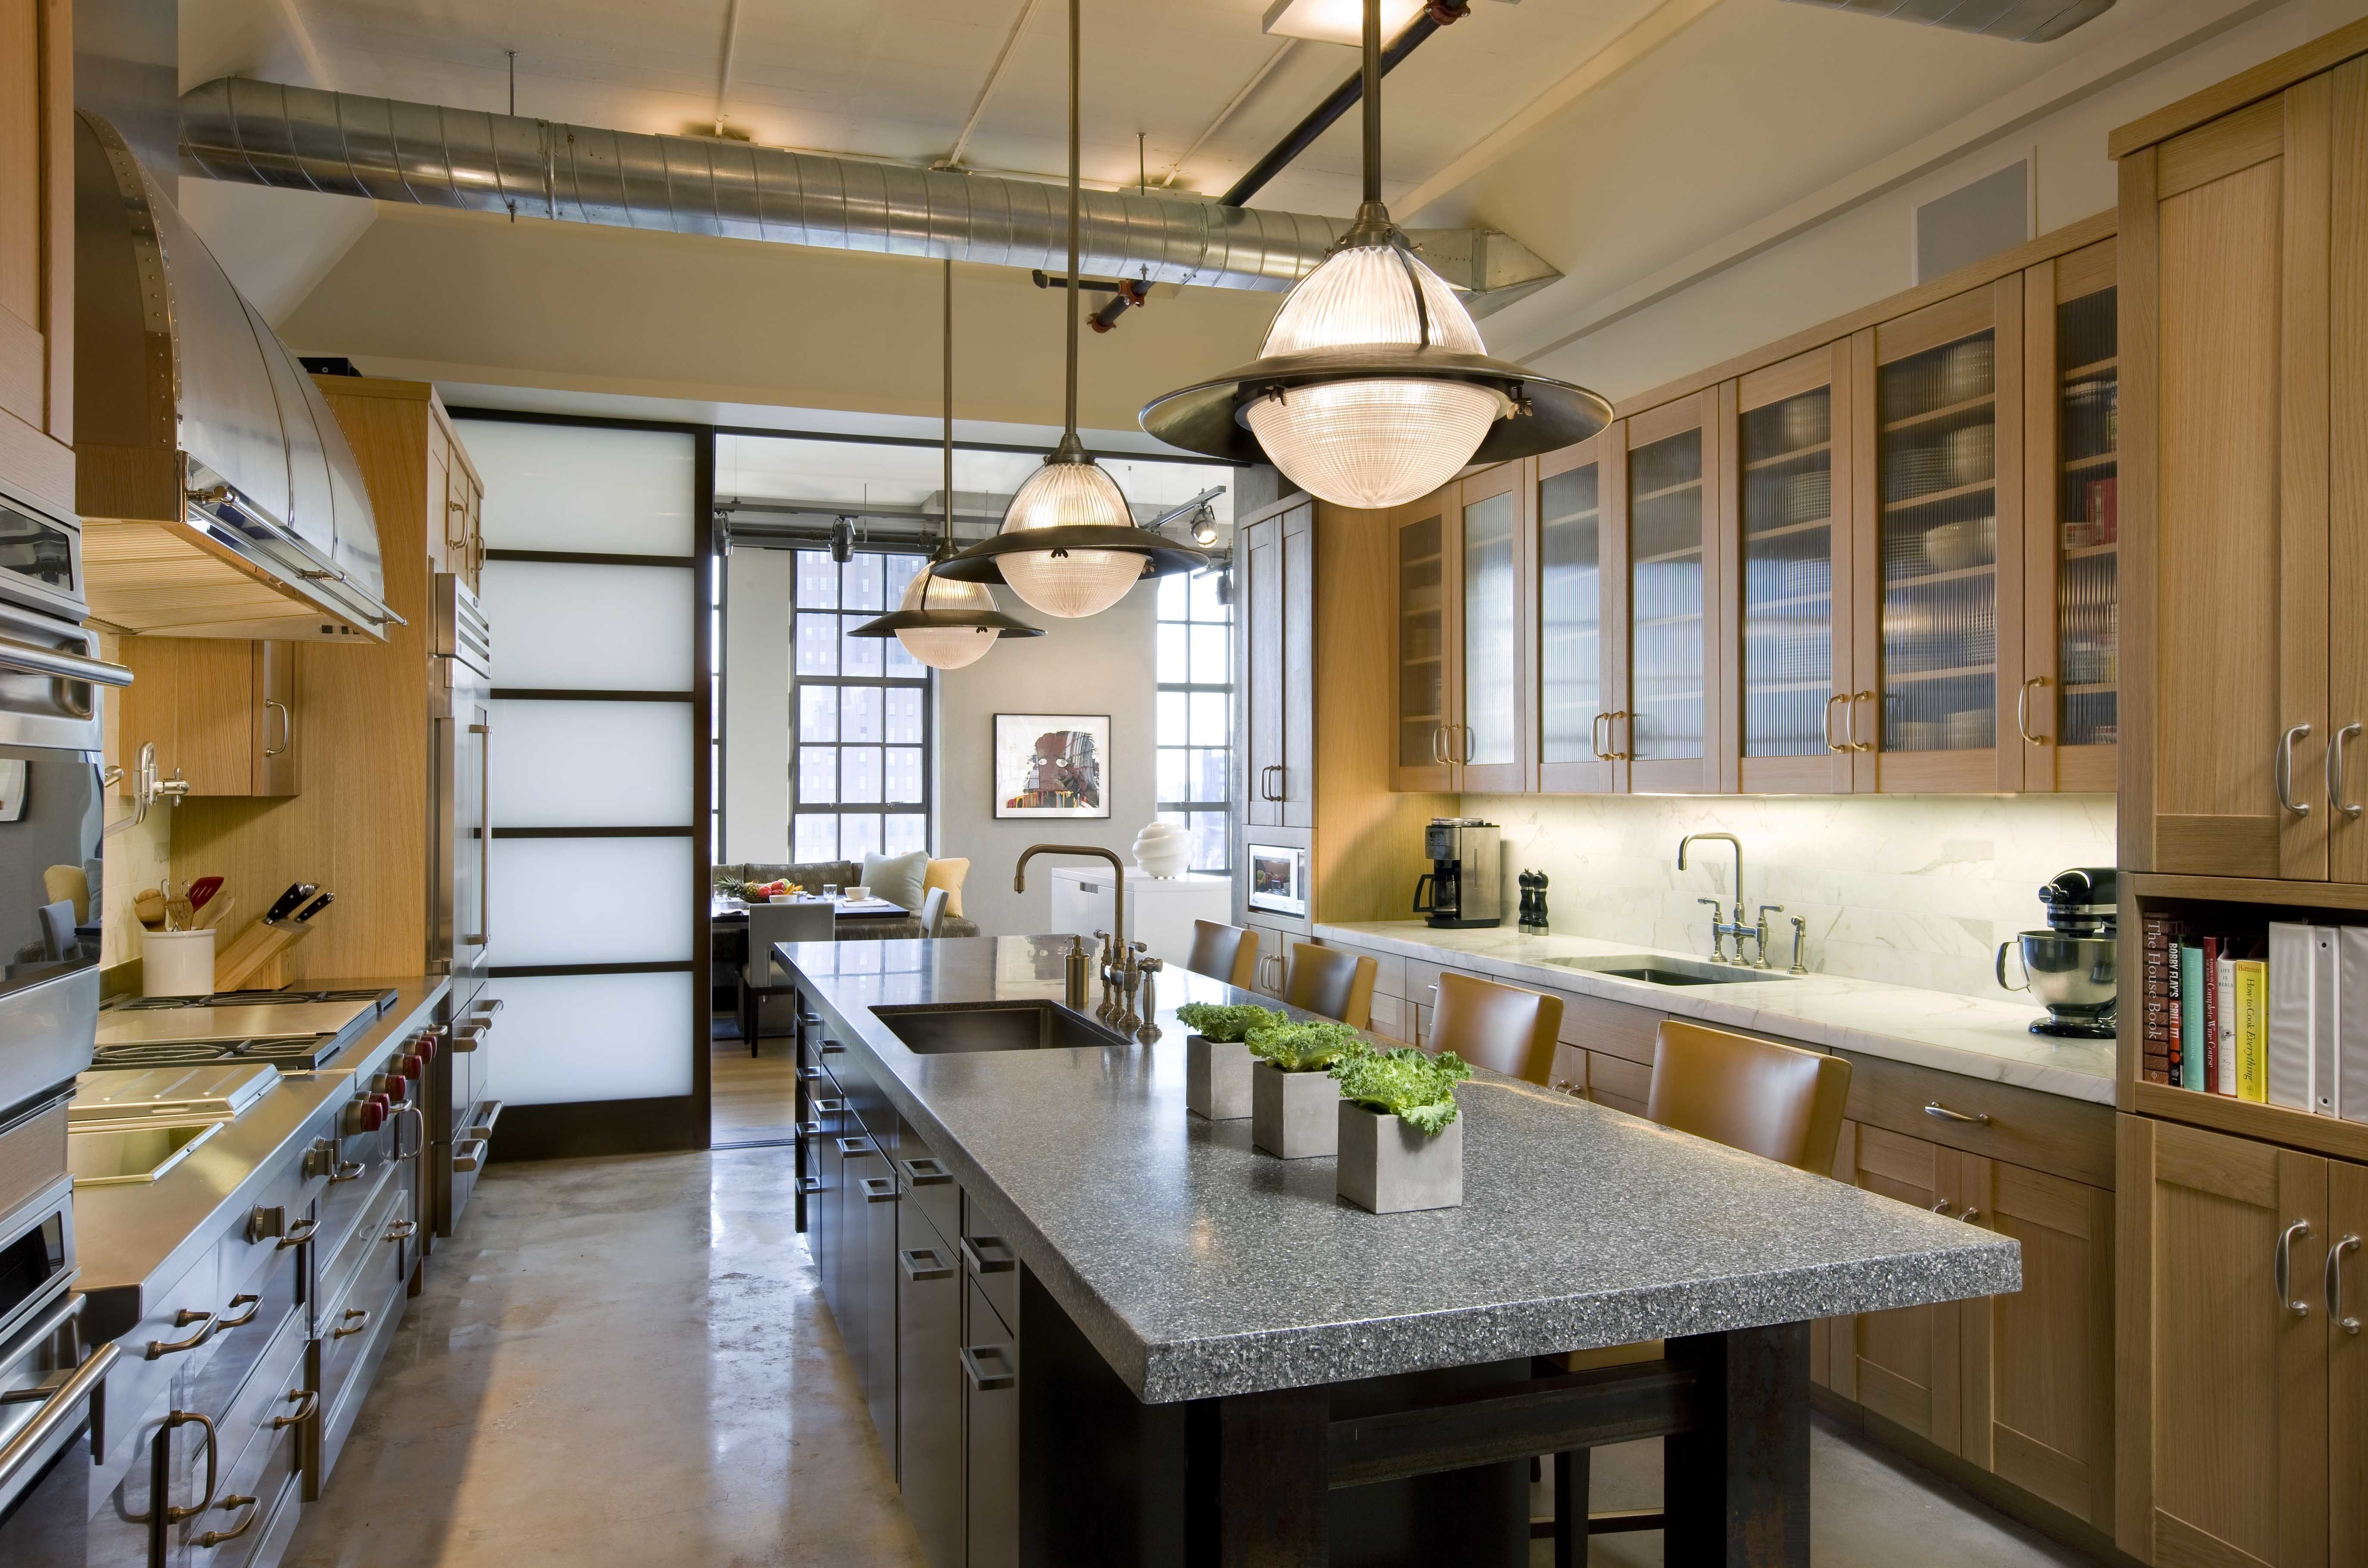 6 Clever Kitchen Design Ideas From St Charles Of New York Kitchen Design Loft Kitchen Kitchen Cabinets For Sale